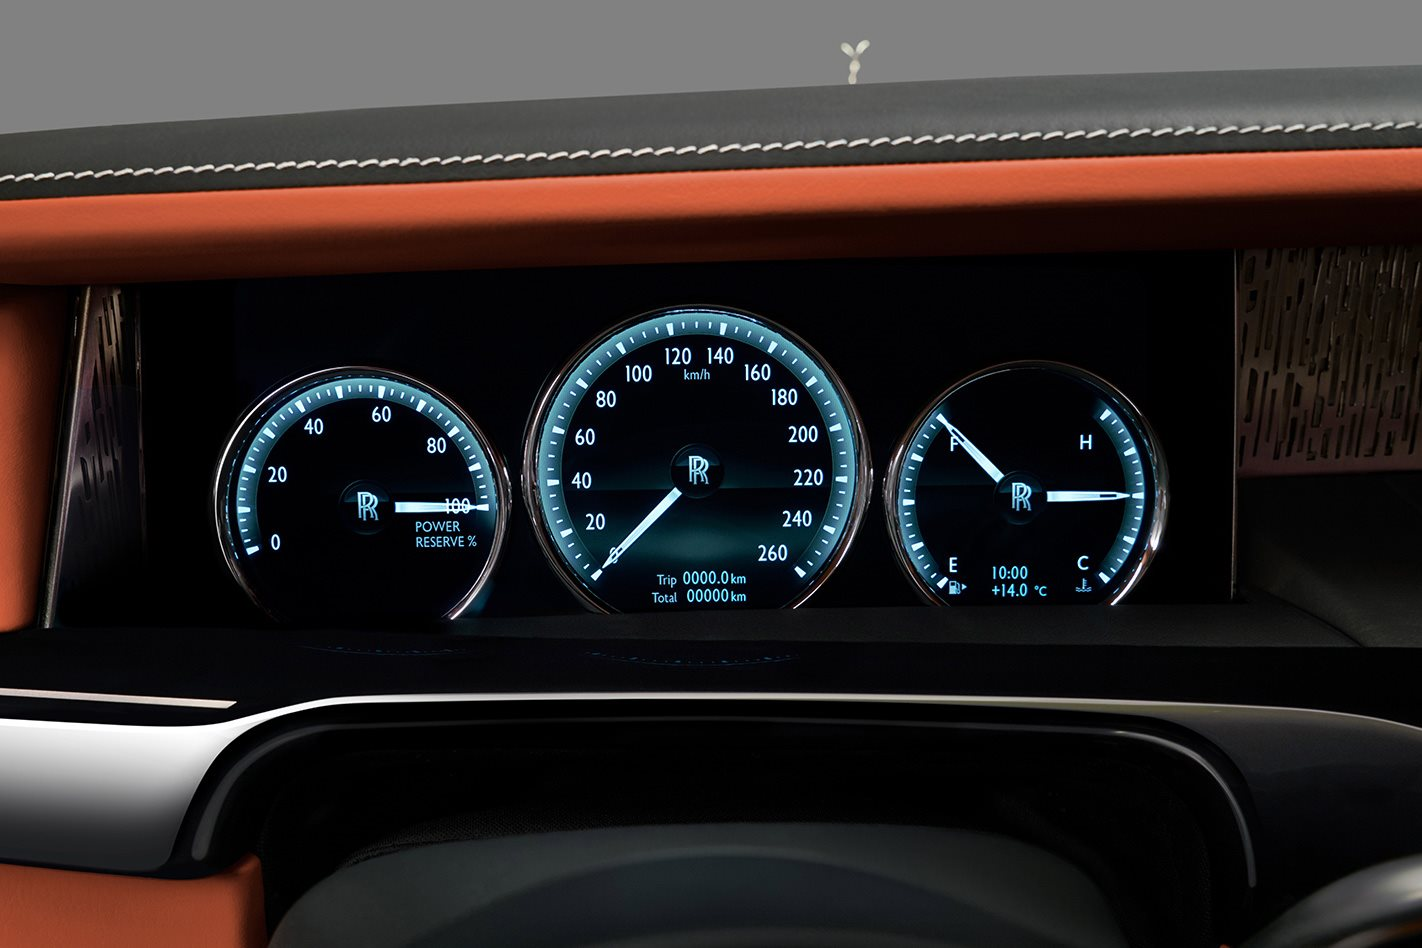 2018 Rolls Royce Phantom electronics